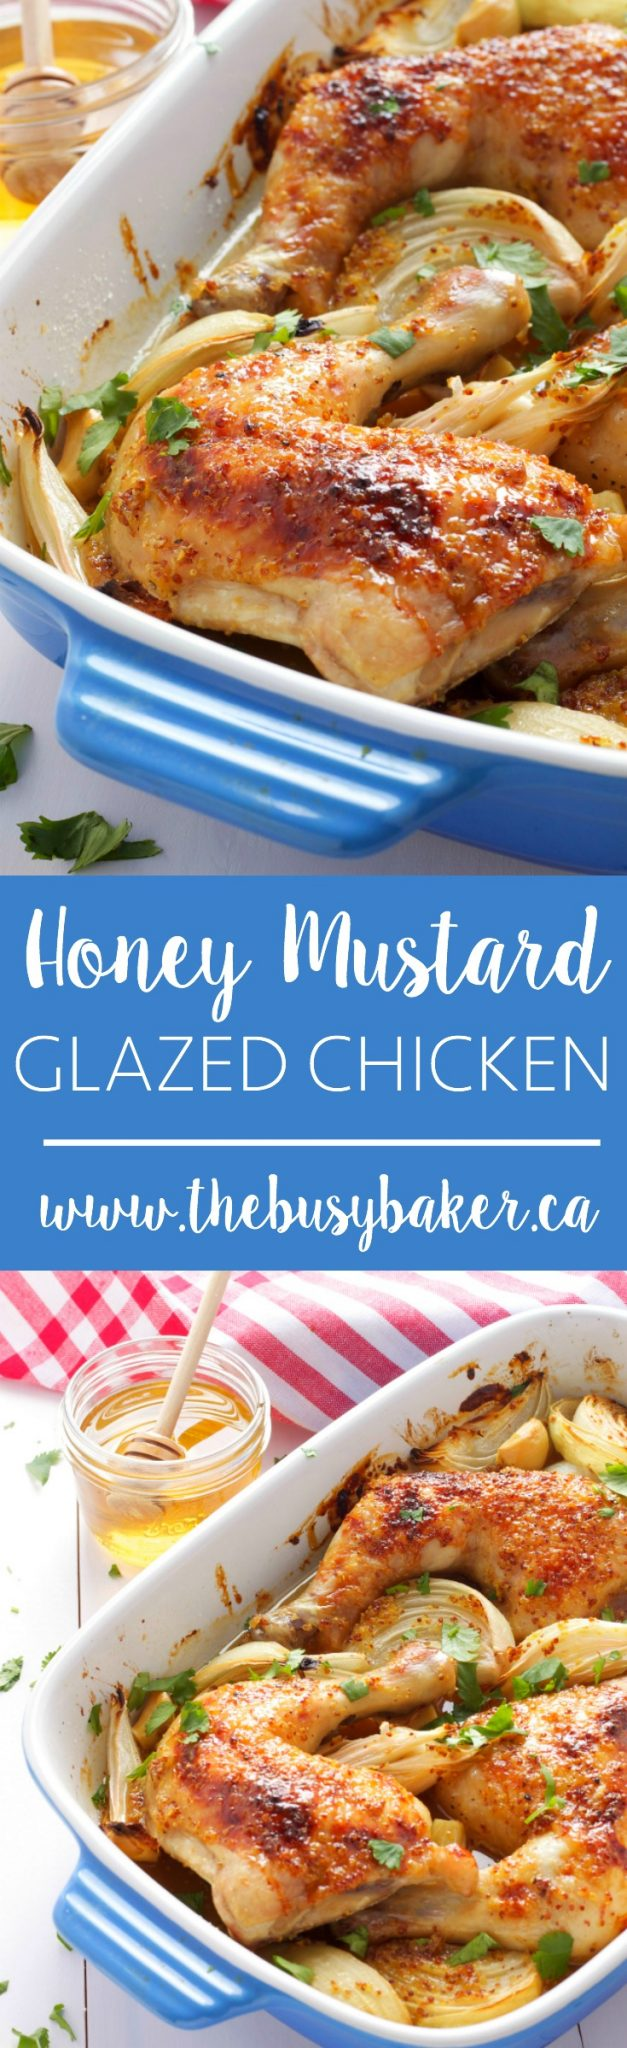 This Honey Mustard Glazed Chicken Recipe is an easy main-dish made with wholesome, healthy ingredients so it's perfect for the whole family! Recipe from thebusybaker.ca! via @busybakerblog